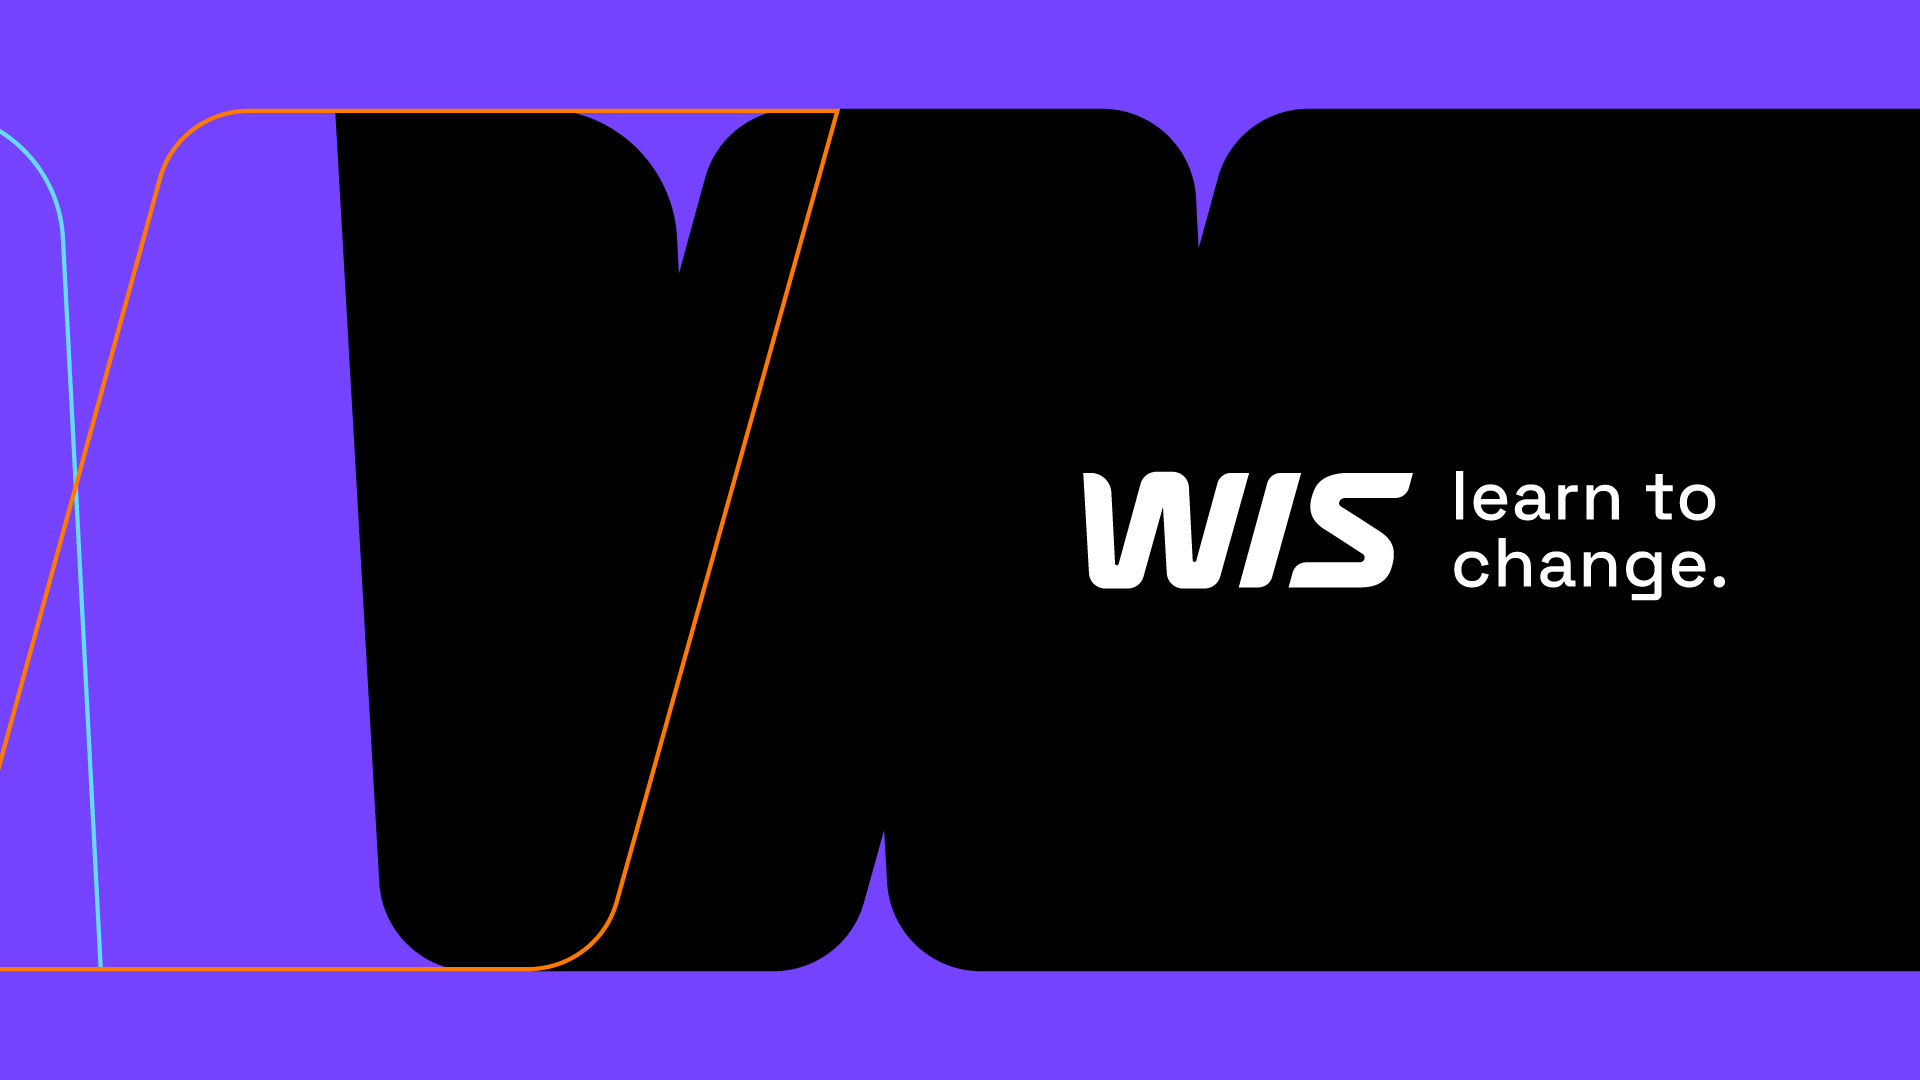 WIS: LEARN TO CHANGE